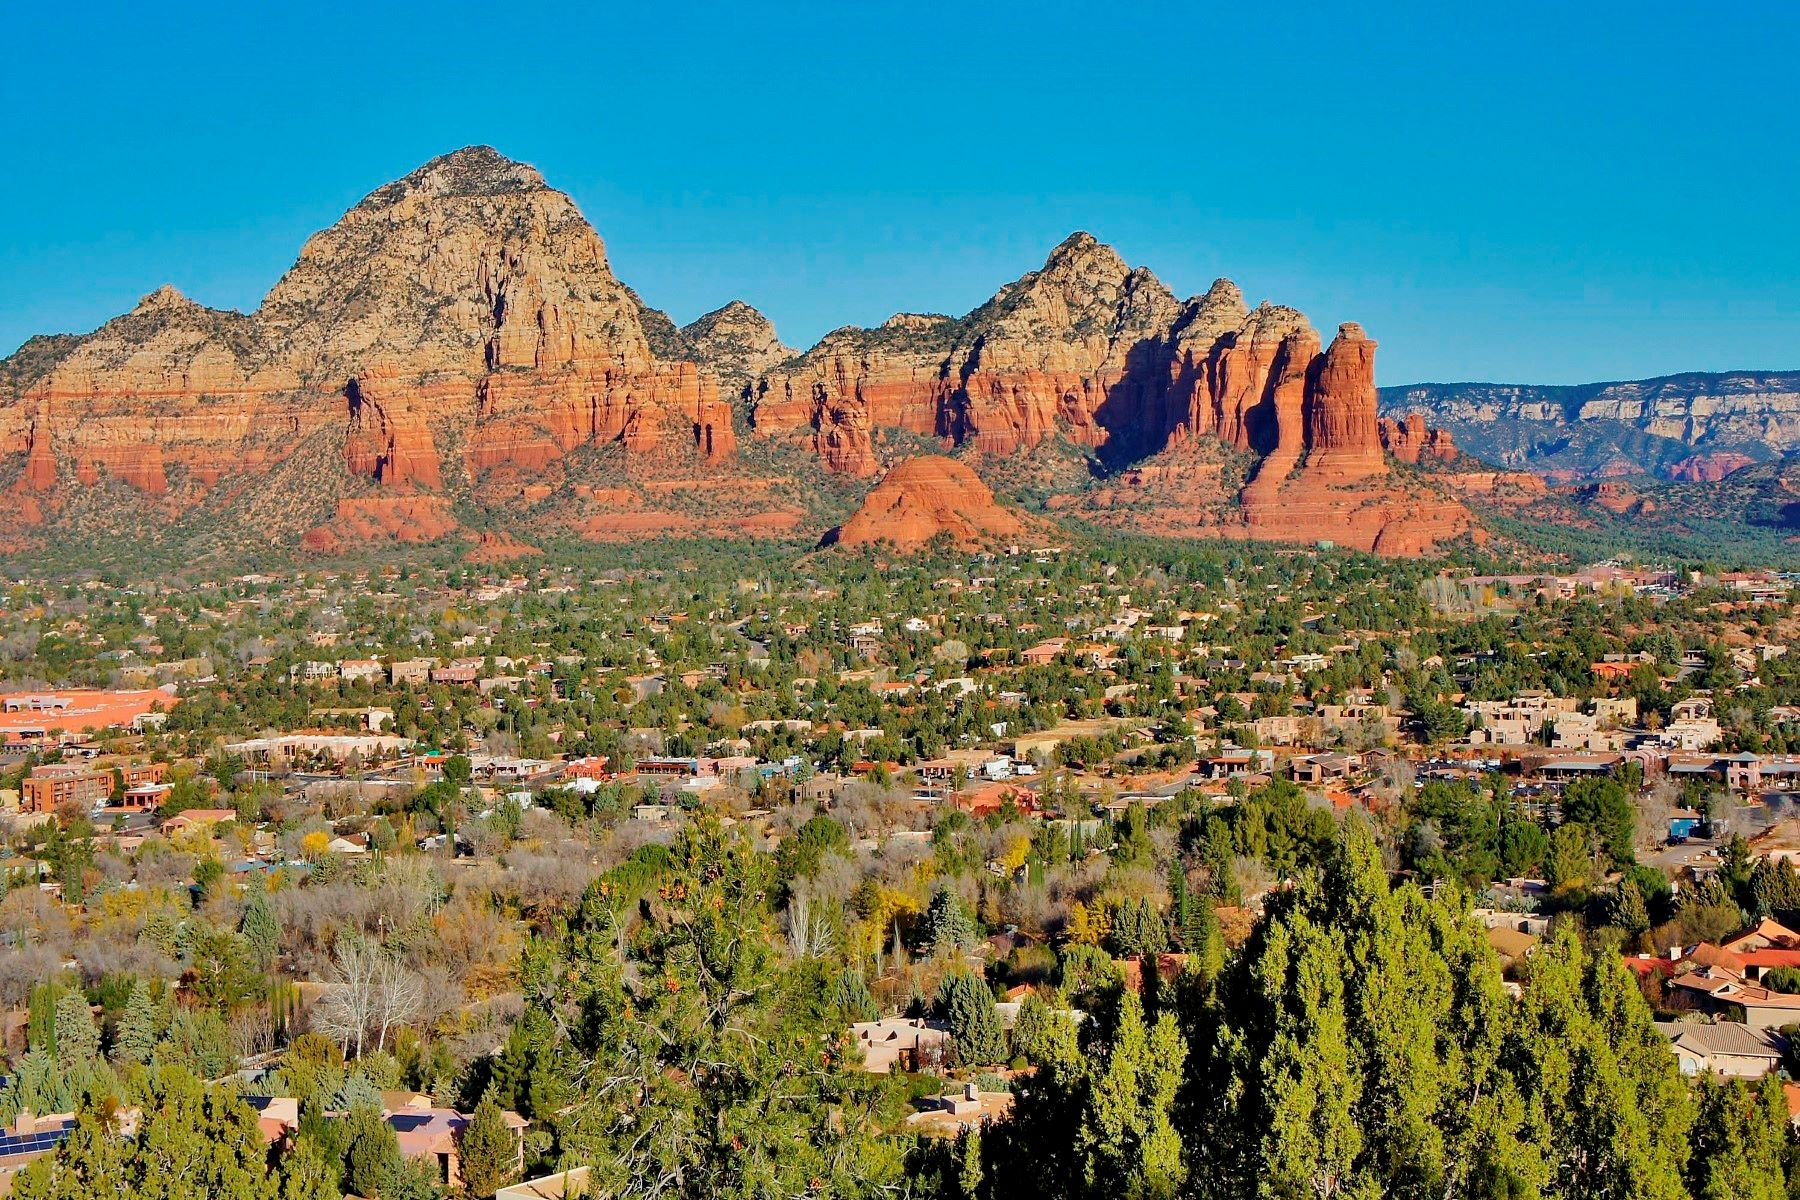 Terreno para Venda às Rare Residential Acreage with Stunning Views 815 & 855 Airport Rd, Sedona, Arizona, 86336 Estados Unidos